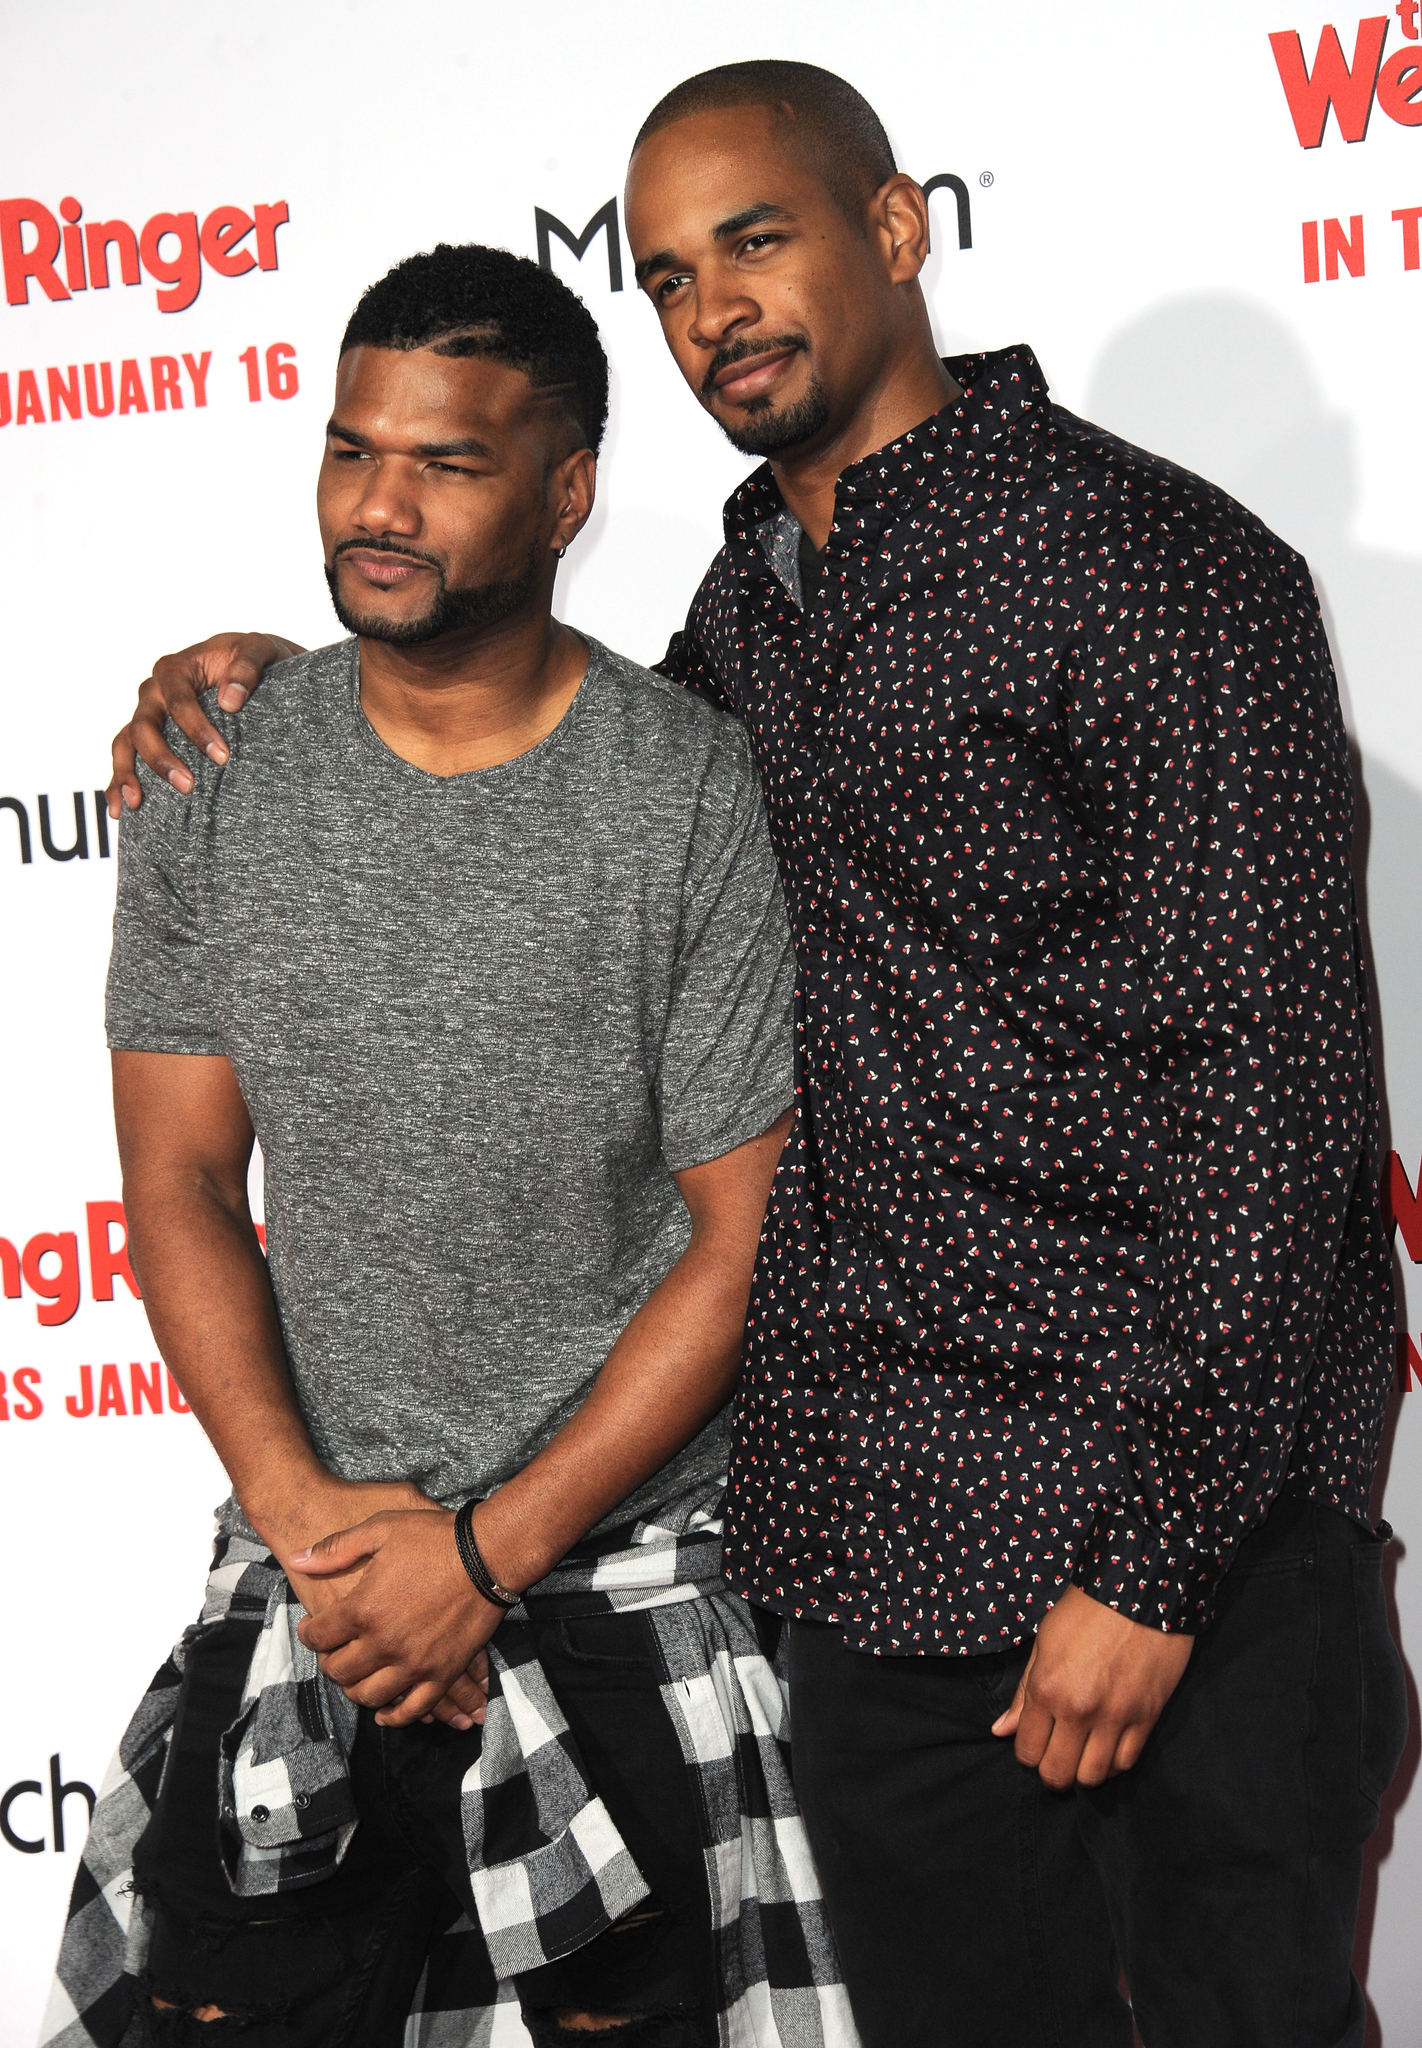 Damon Wayans Jr. and Damien Dante Wayans at an event for The Wedding Ringer (2015)